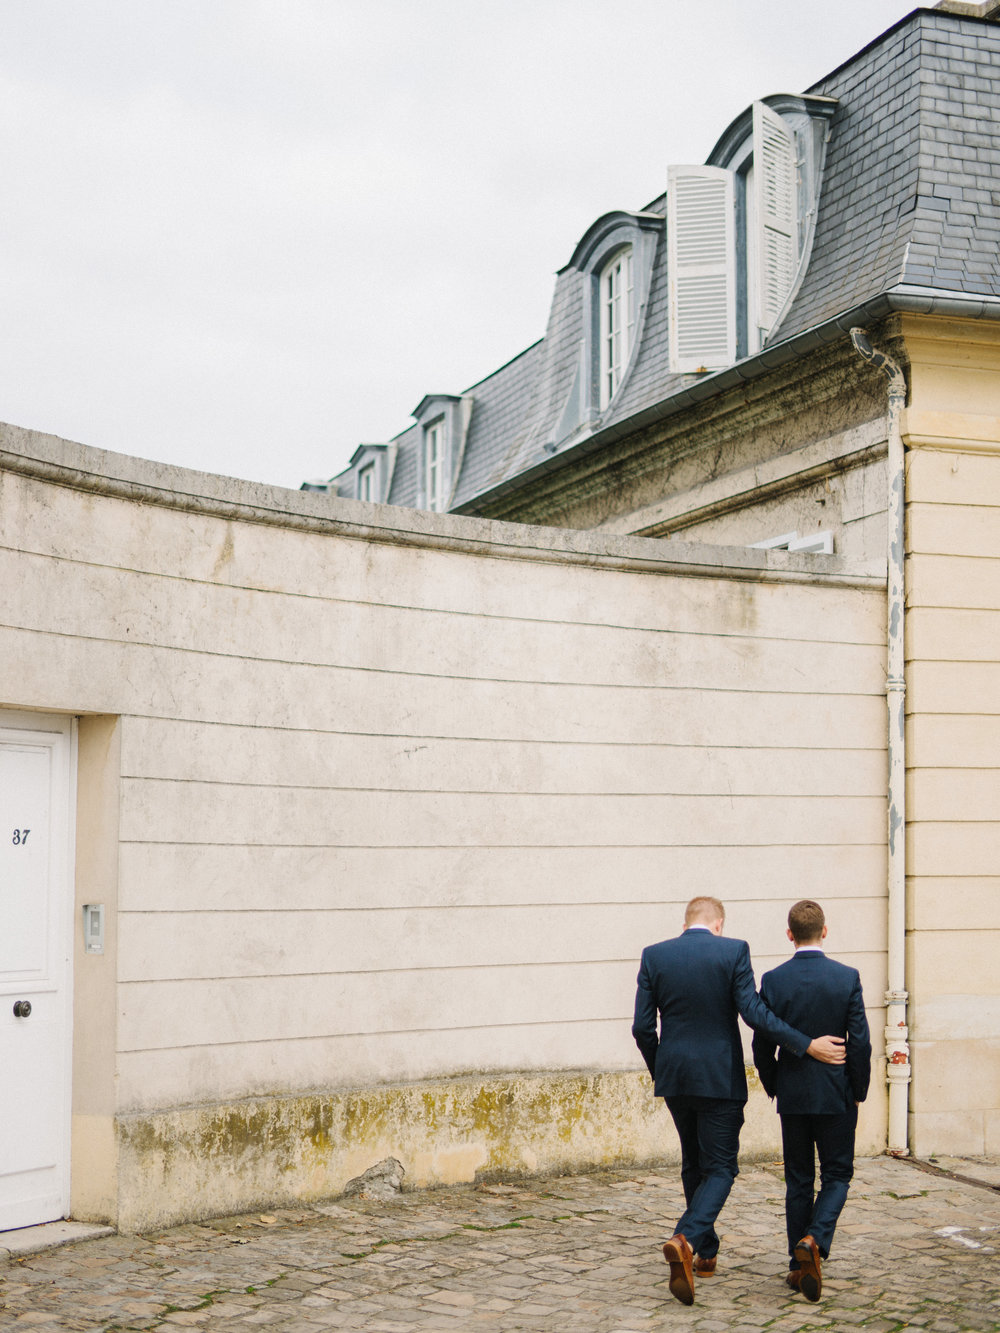 ANDREW + DANNY    Saint-Germain-En-Laye, France    VIEW